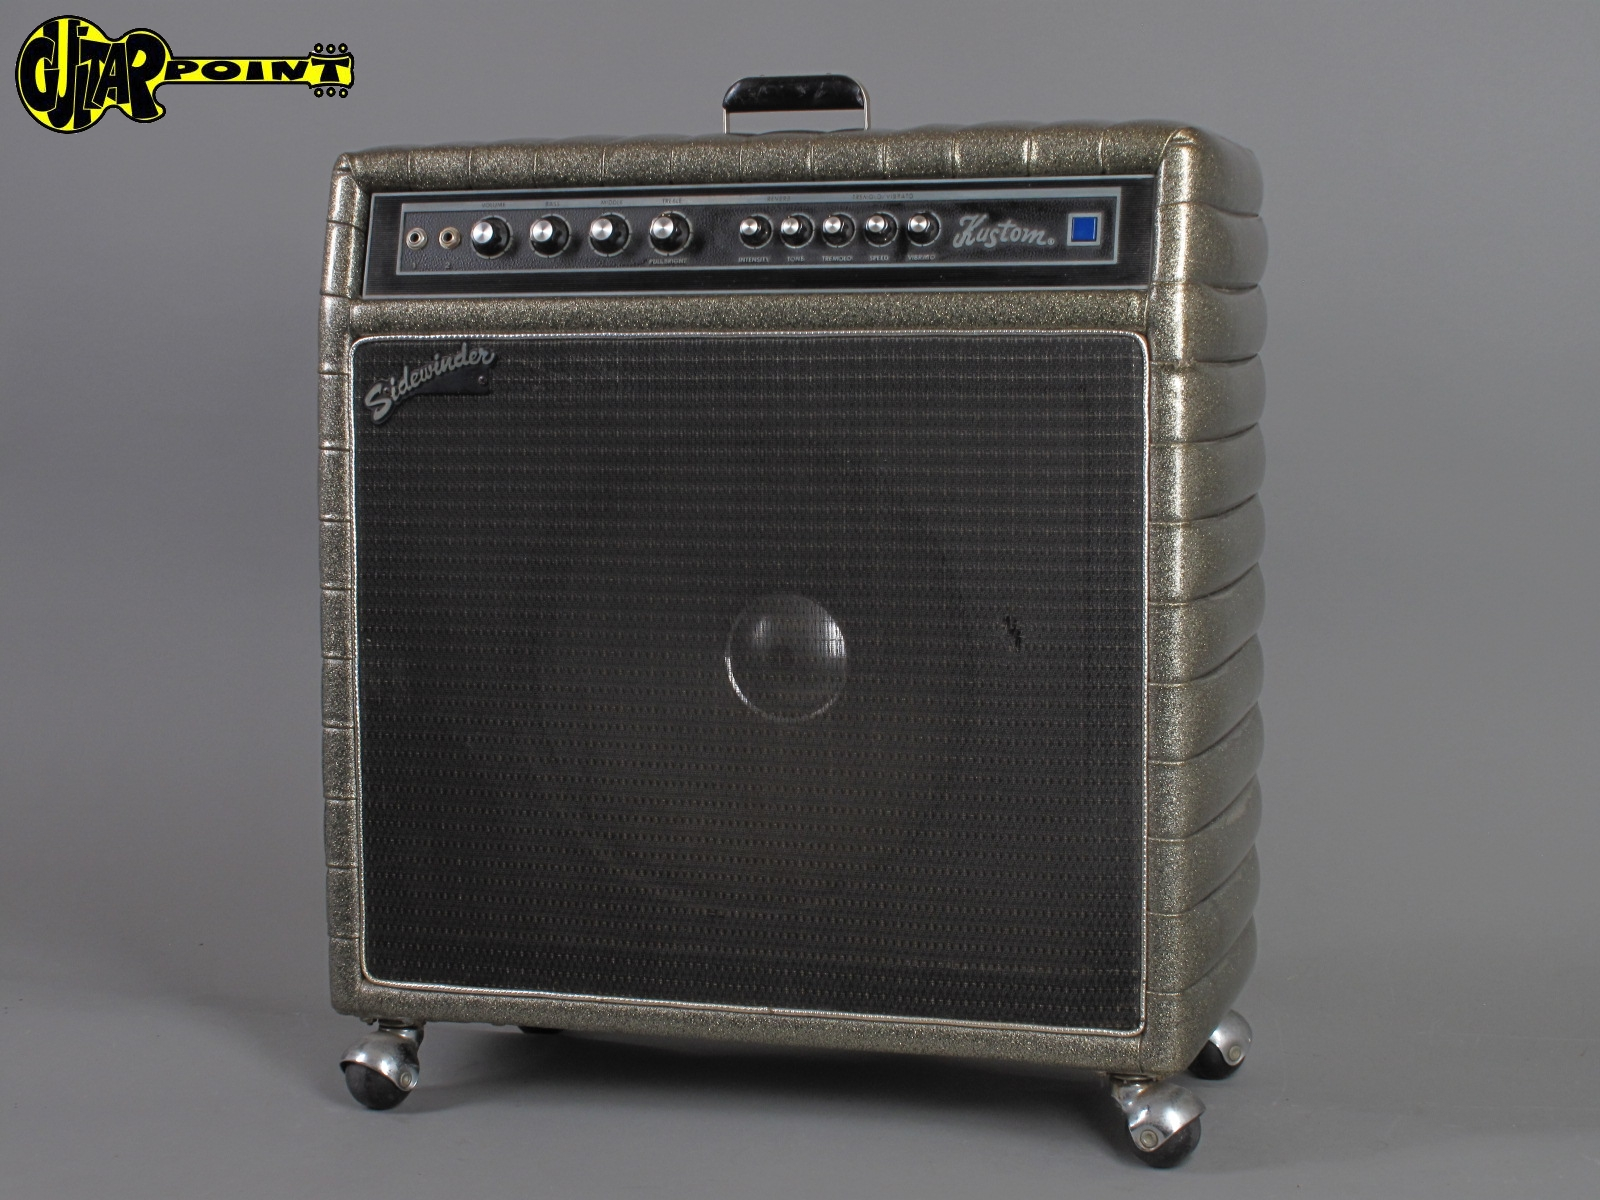 https://guitarpoint.de/app/uploads/products/1972-kustom-sidewinder-24c-tuck-roll-1x15-150-watt/Kustom_Sidewinder24Cx_21.jpg